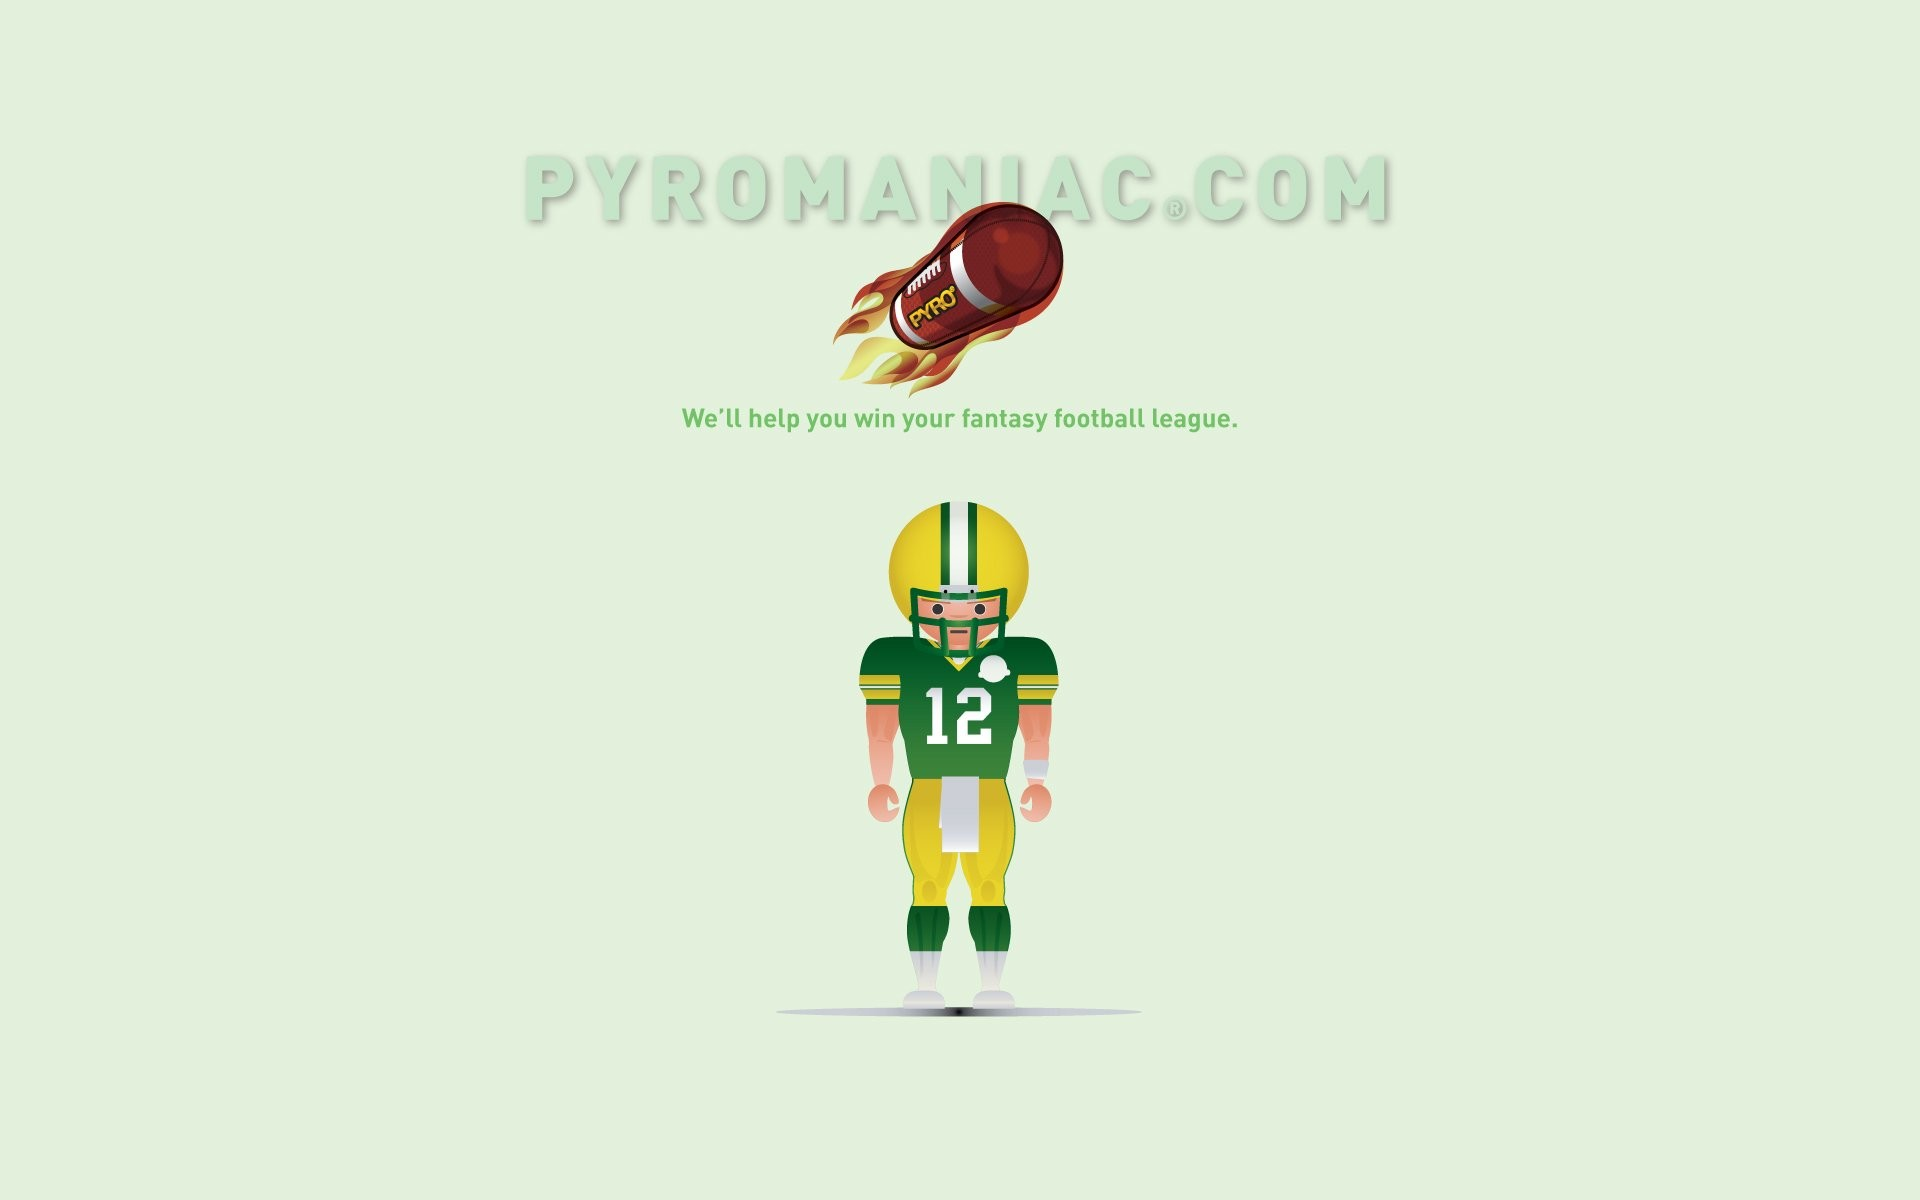 For Green Bay Packers Aaron Rodgers Wallpaper Green Bay Packers … |  Download Wallpaper | Pinterest | Aaron rodgers and Wallpaper